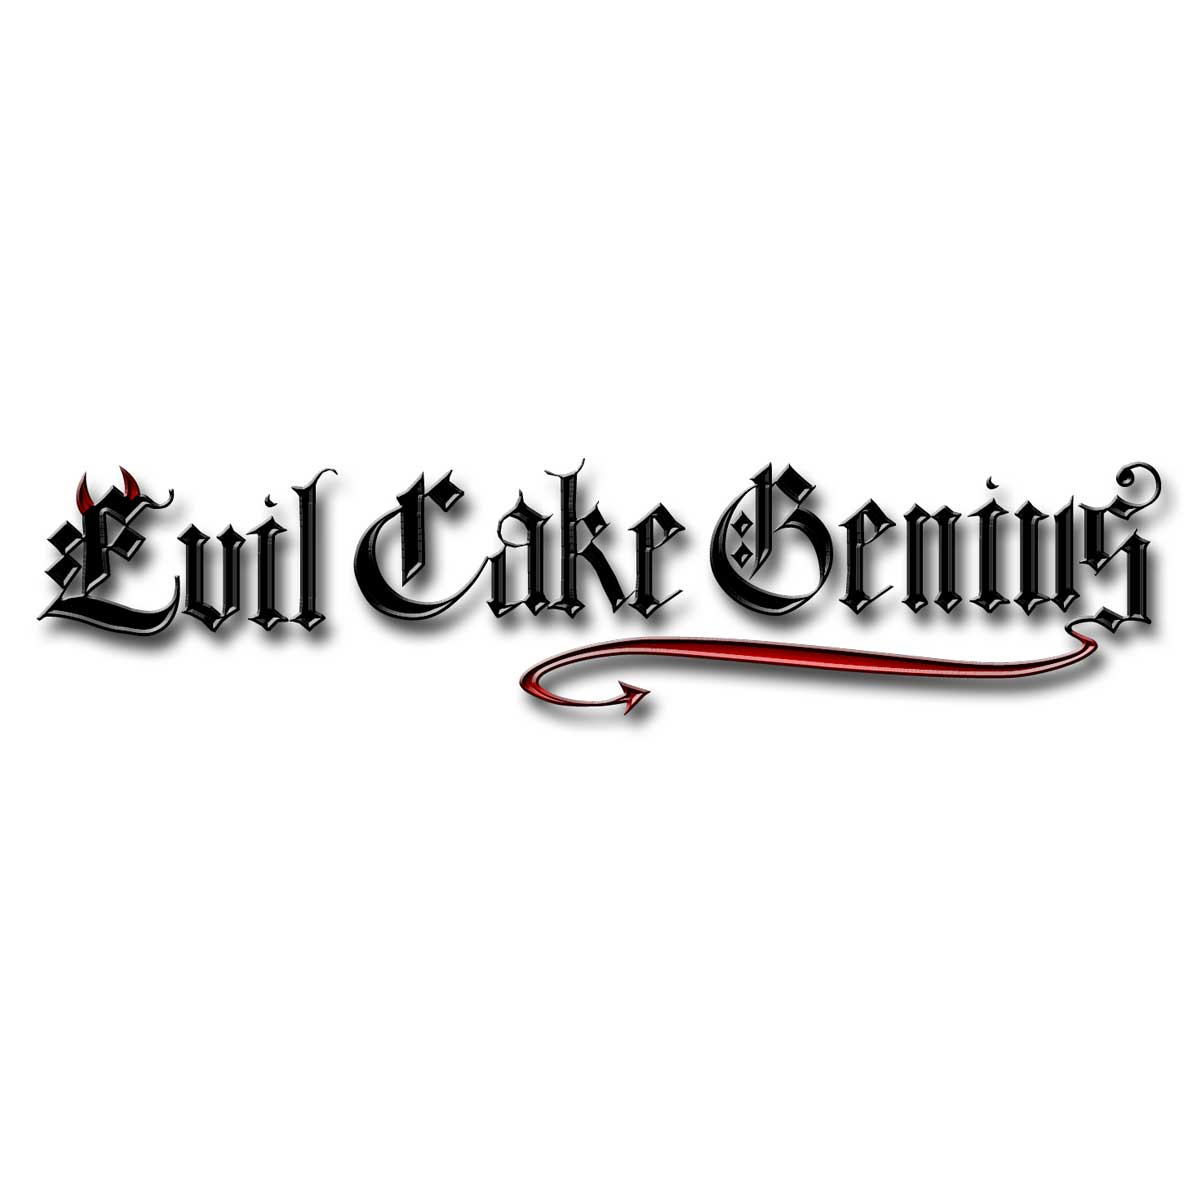 White Foil Cake Drums (Sets of 6)